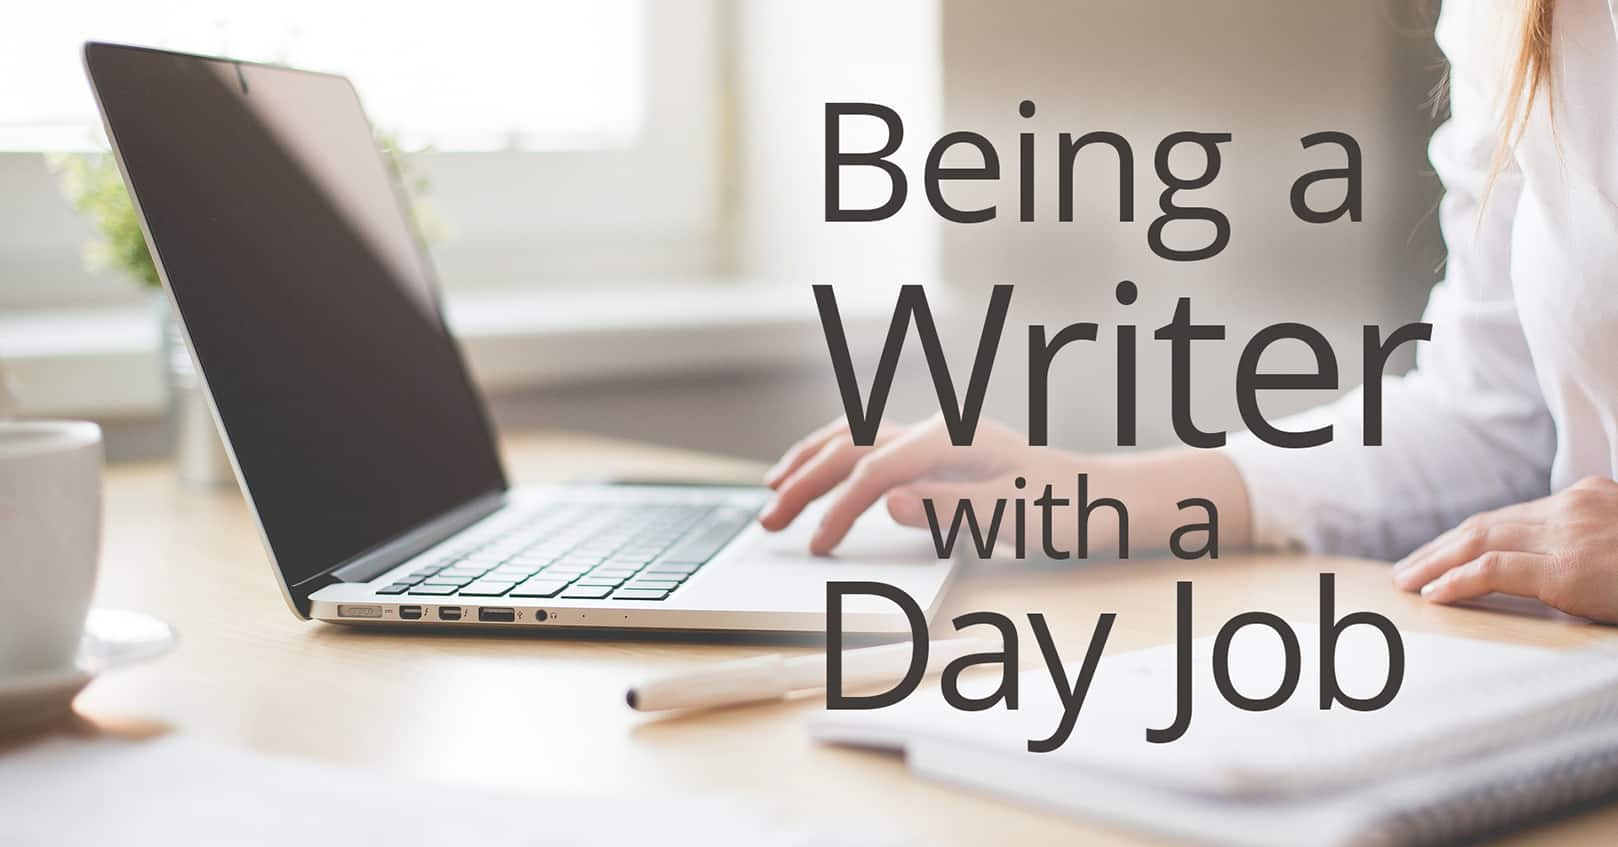 writer with a day job